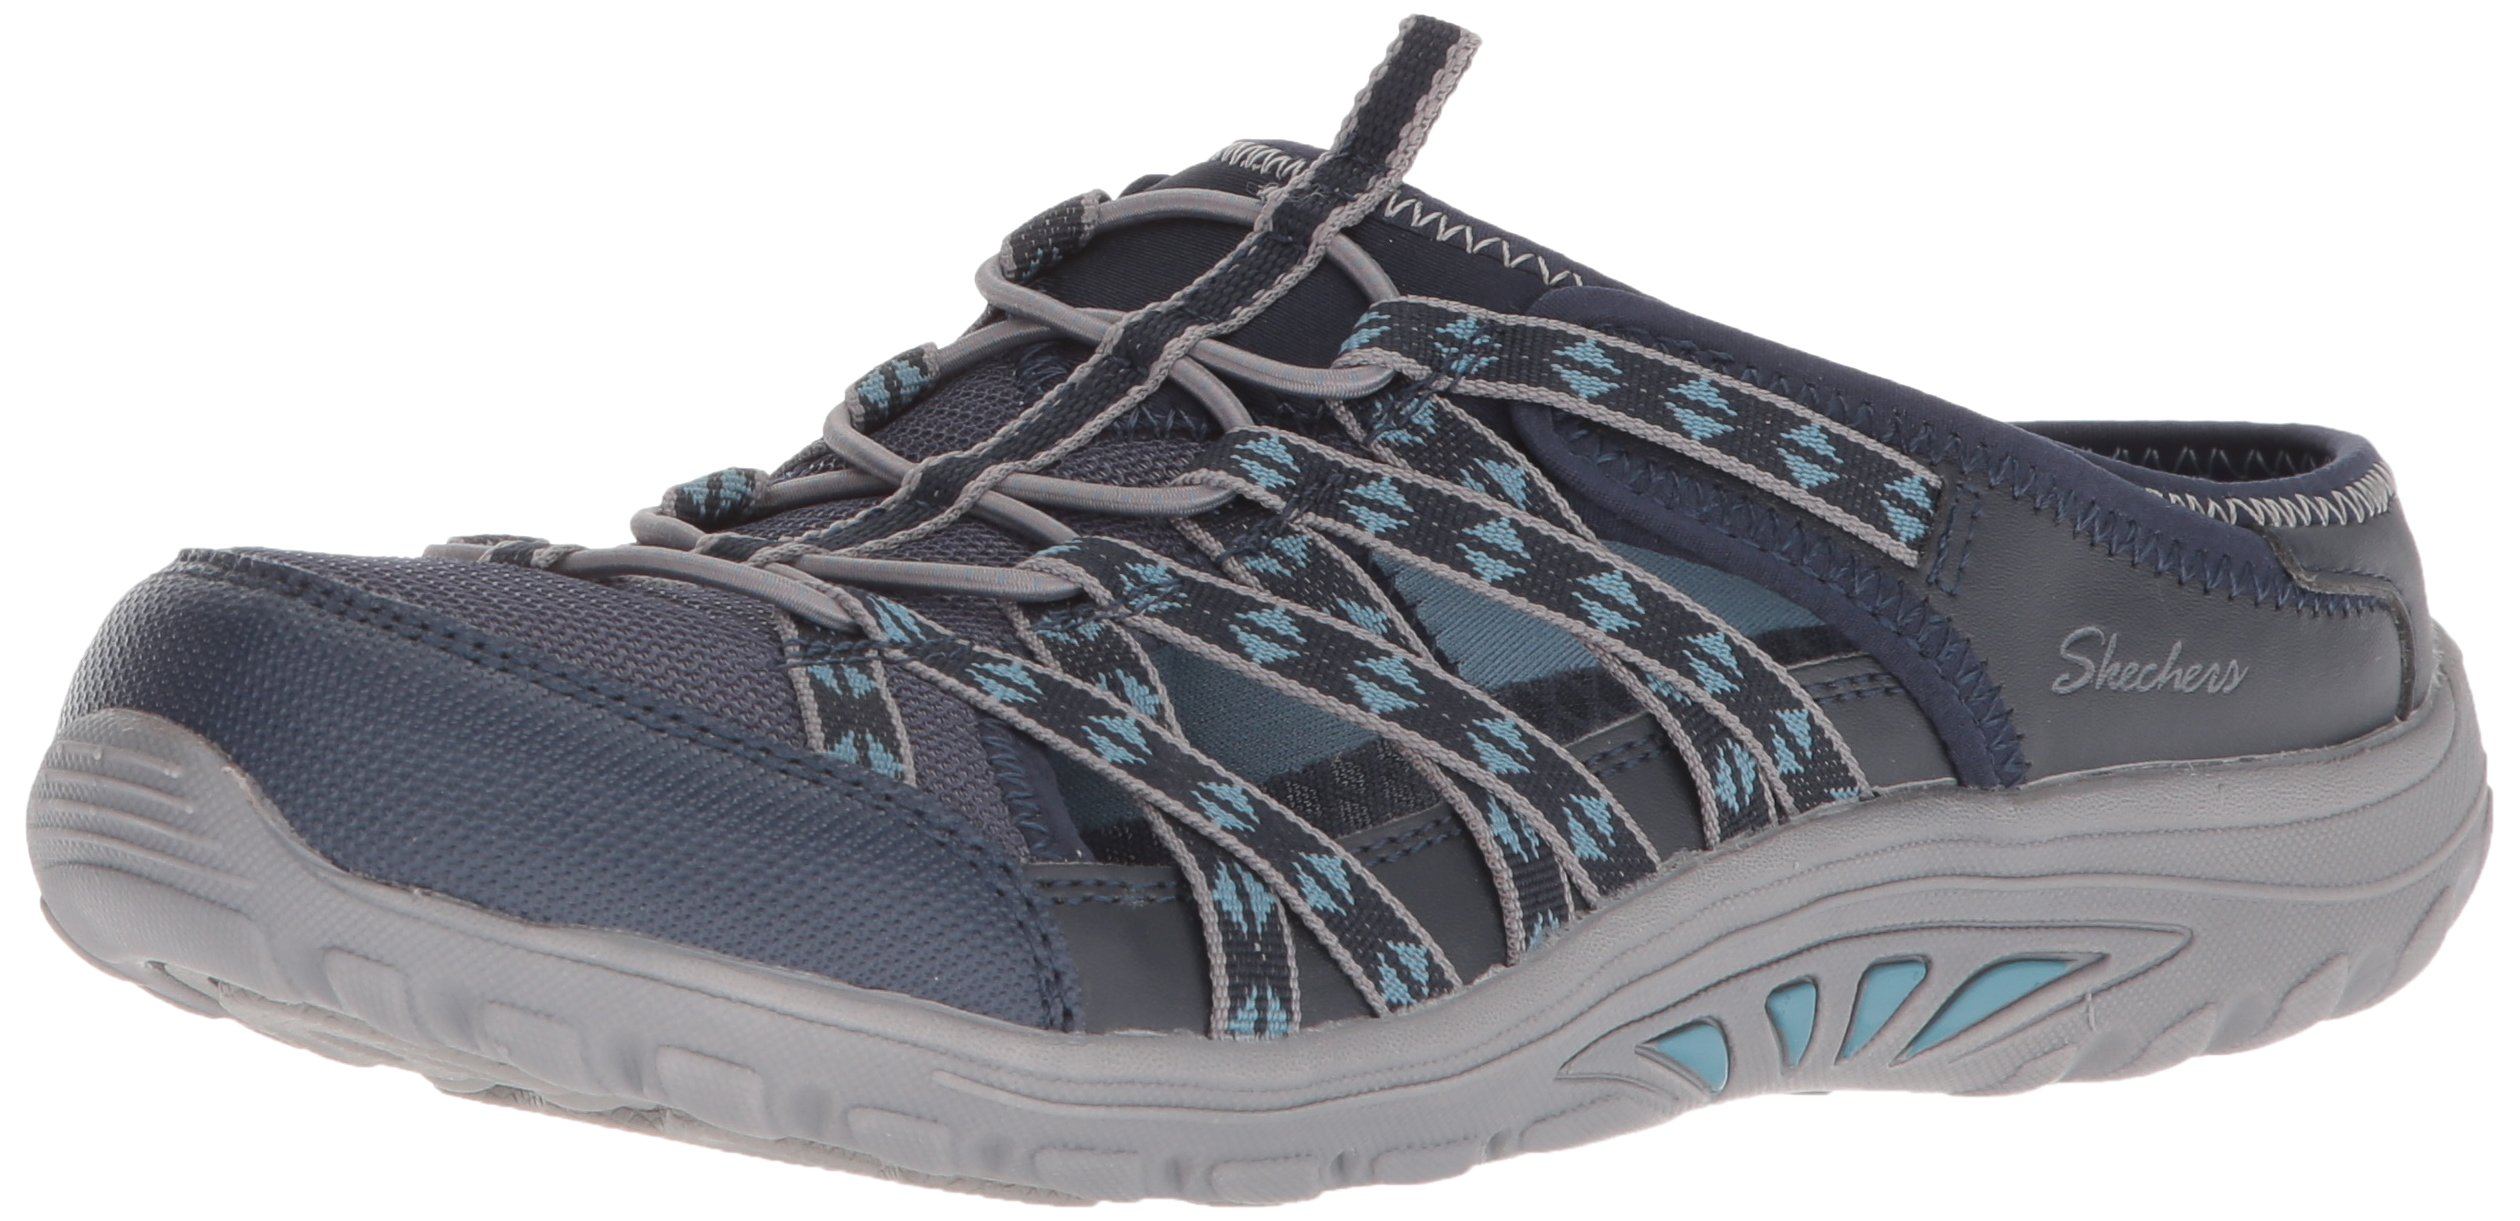 Skechers Women's Reggae Fest-Marlin-Fisherman Open Back Mule Relaxed Fit & A/C Memory Foam Water Shoe Navy 5.5 M US